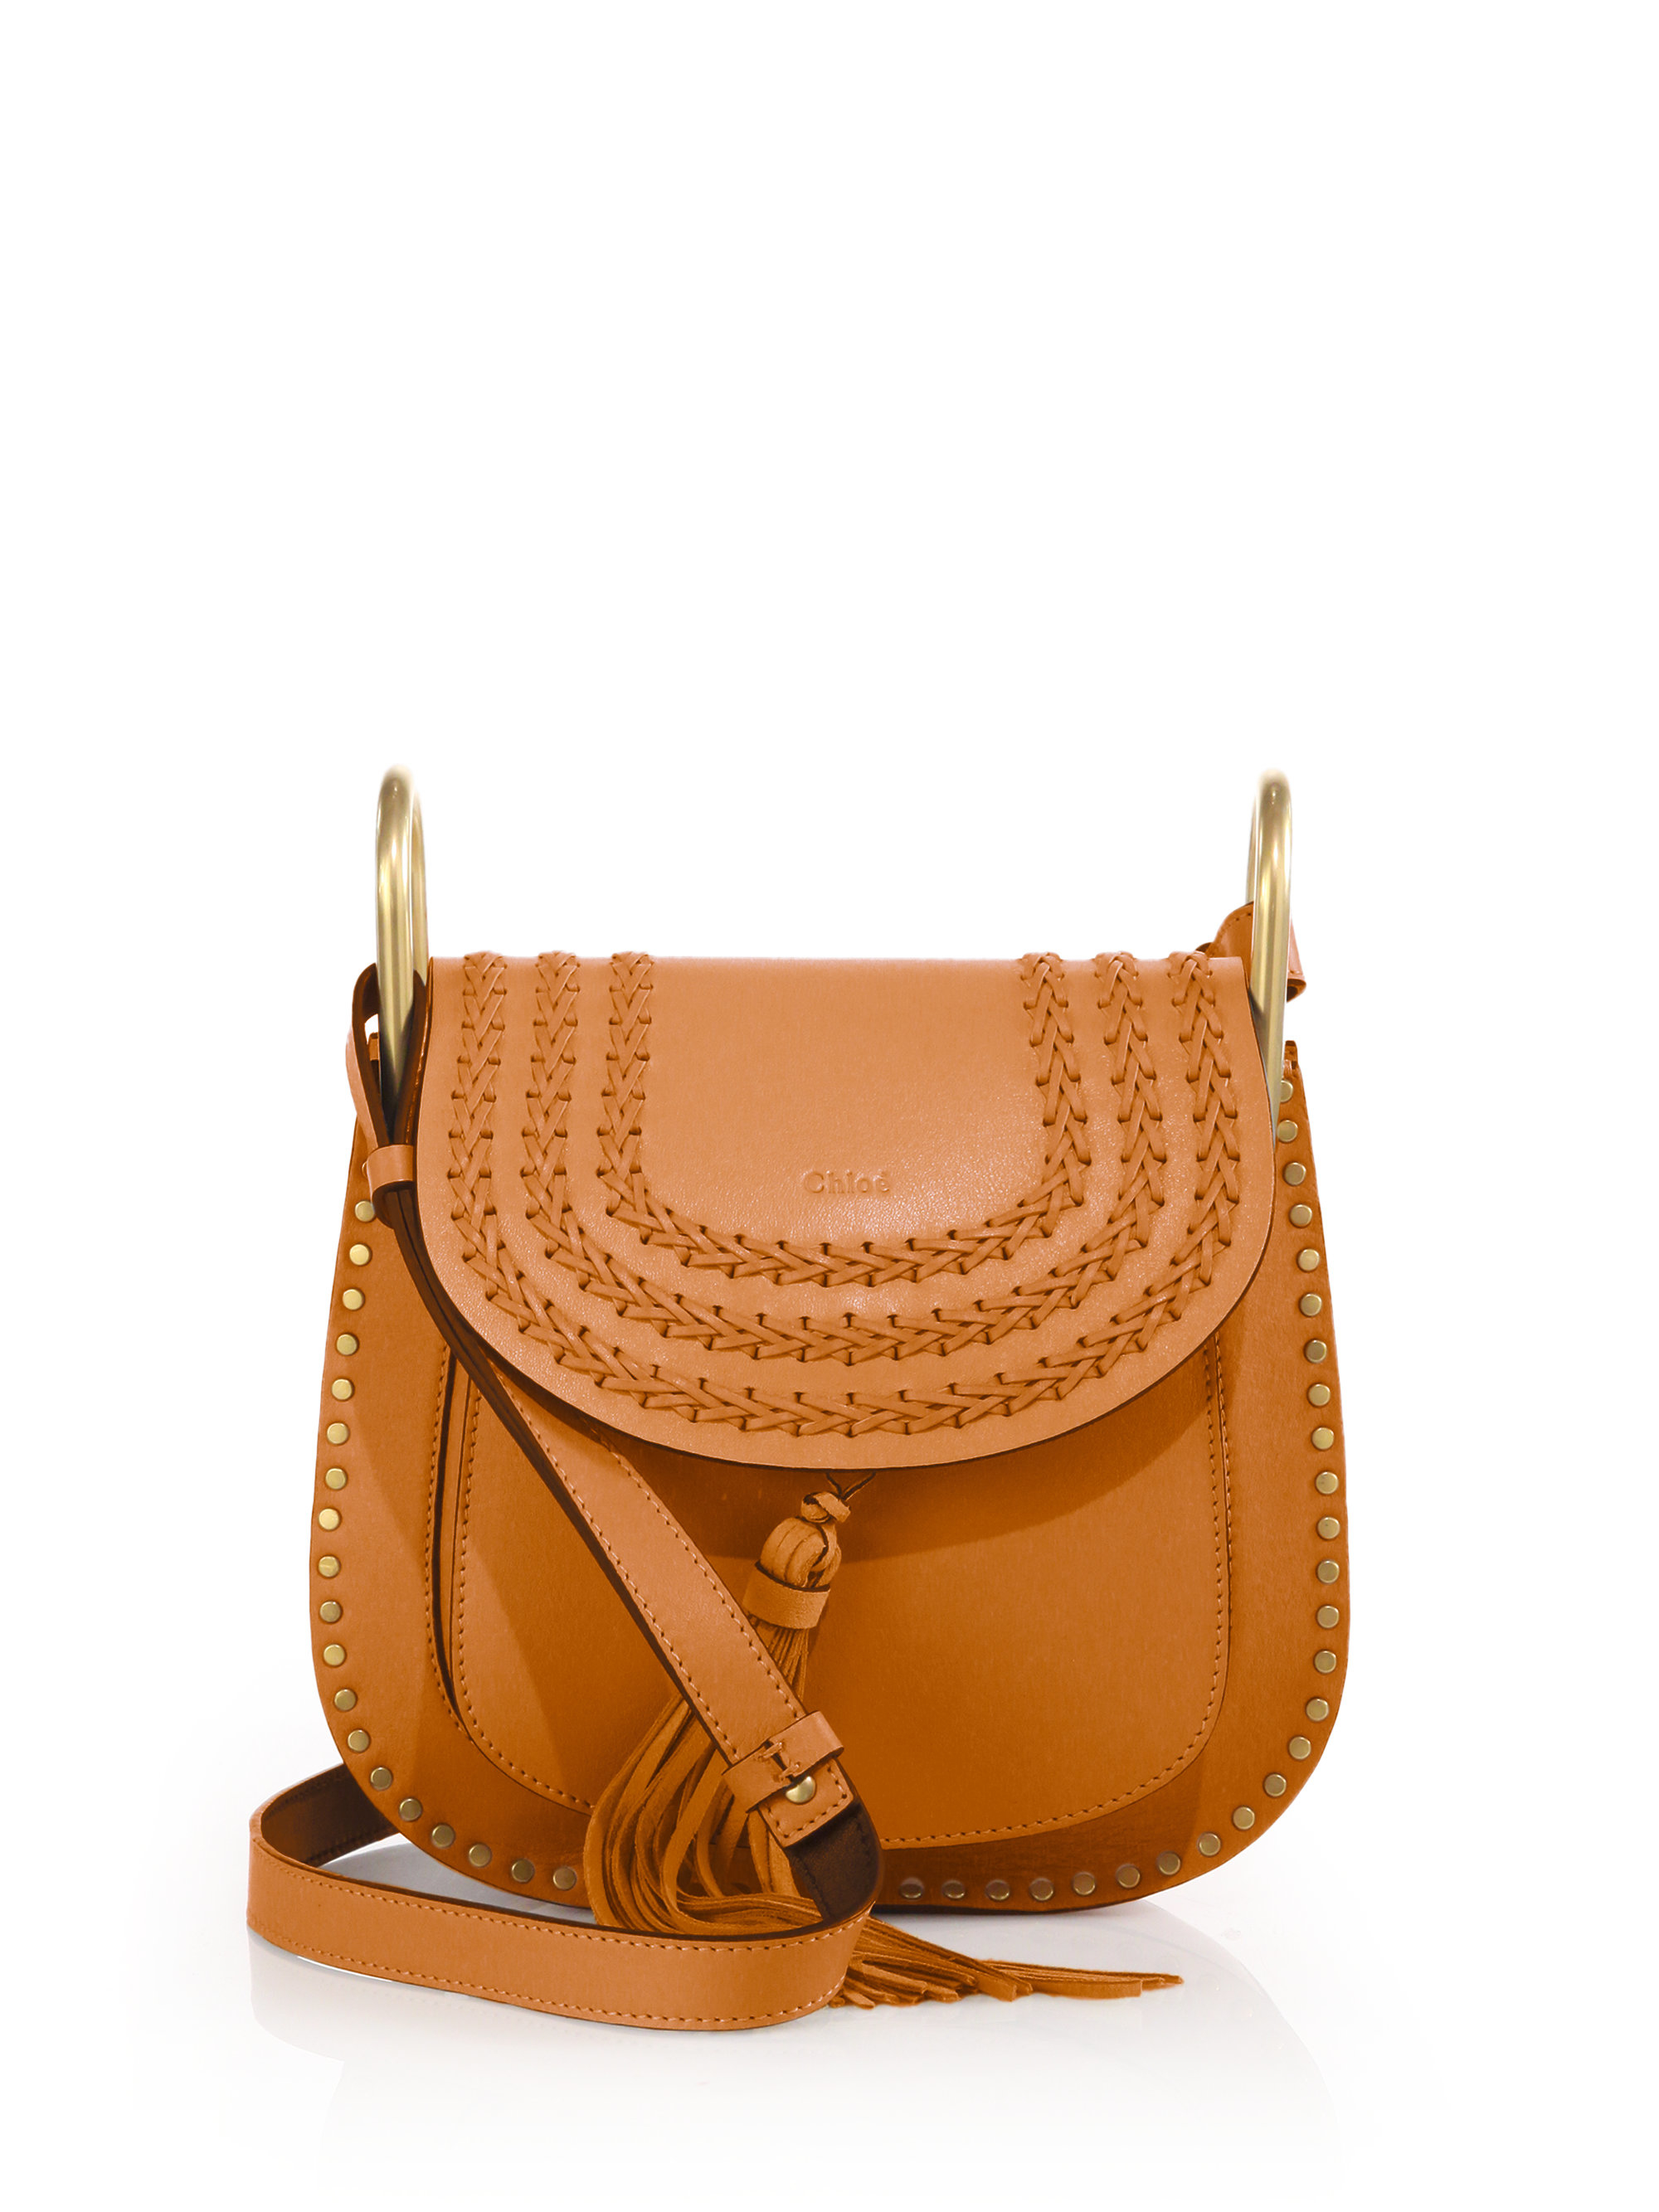 chloe replica wallet - Chlo�� Hudson Small Studded And Braided Leather Shoulder Bag in ...